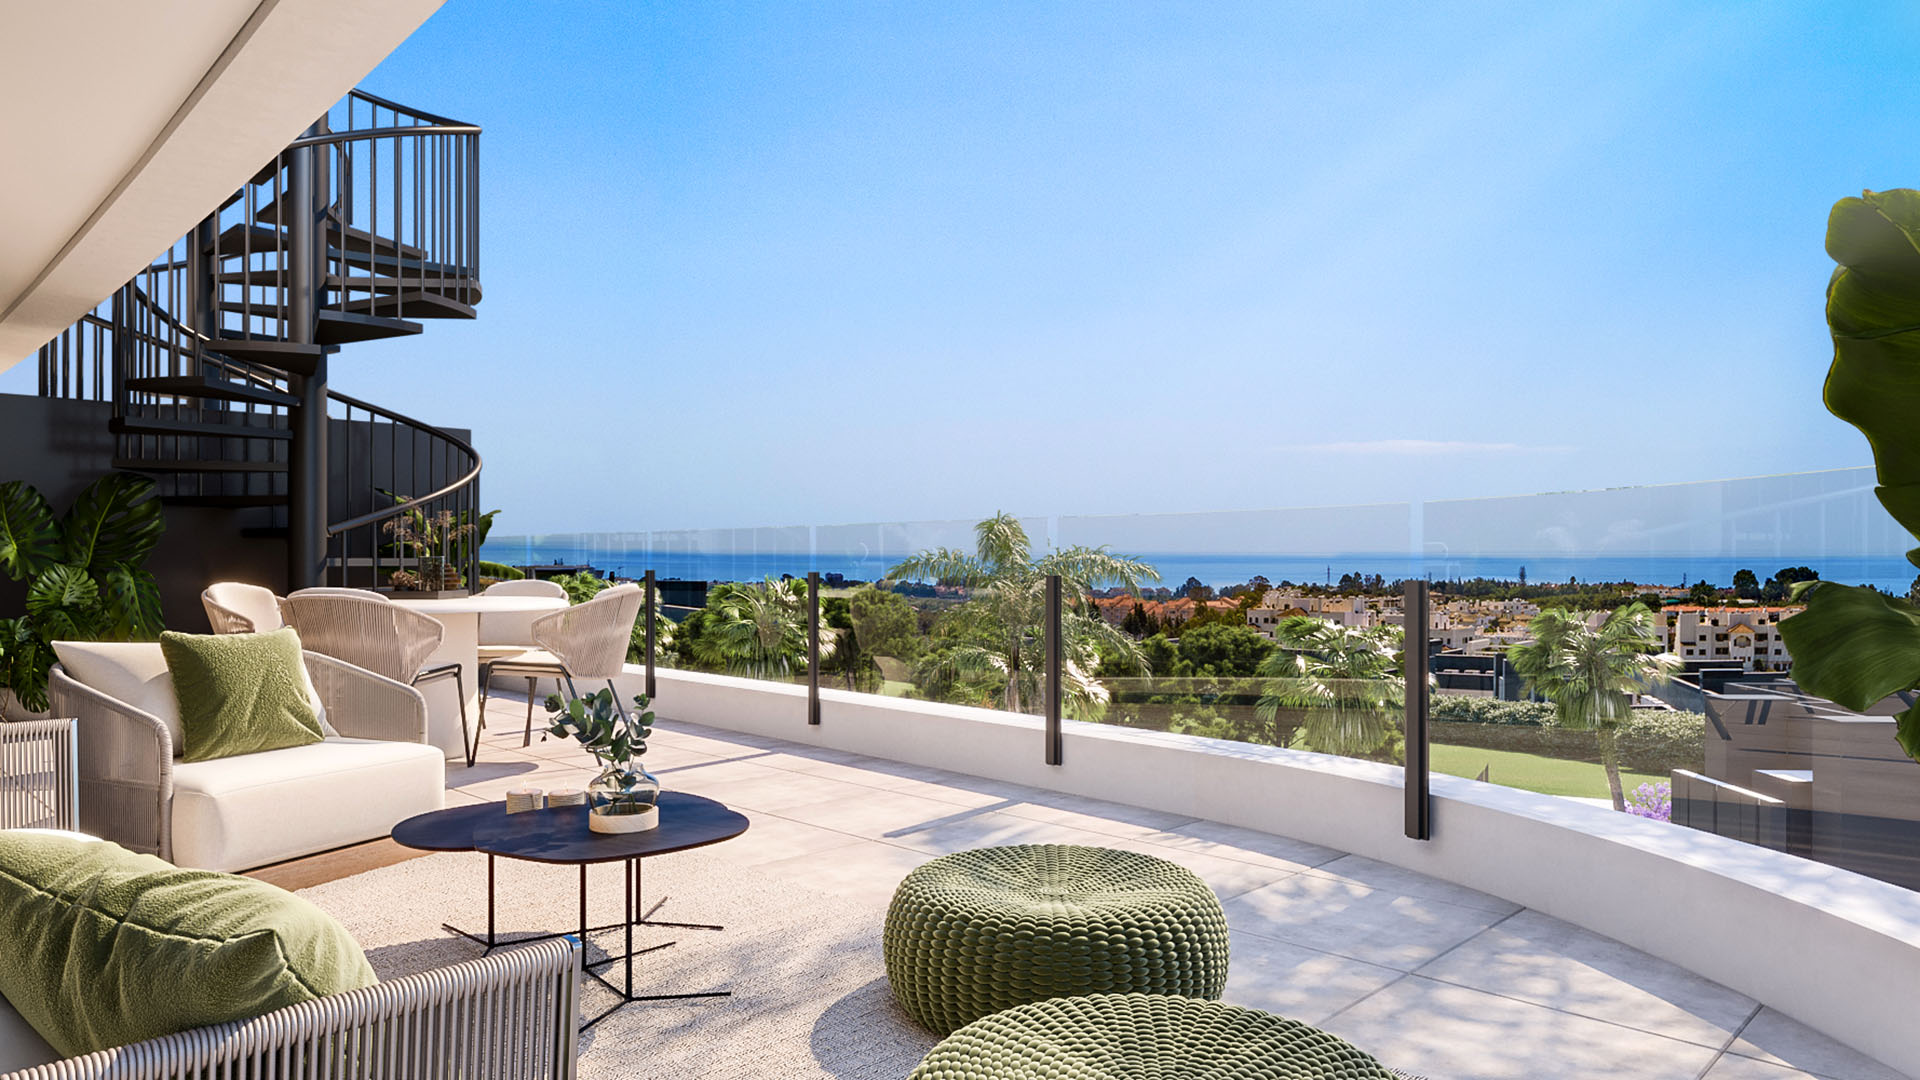 Oasis 325 – Phase 2: Apartments in Estepona on the New Golden Mile